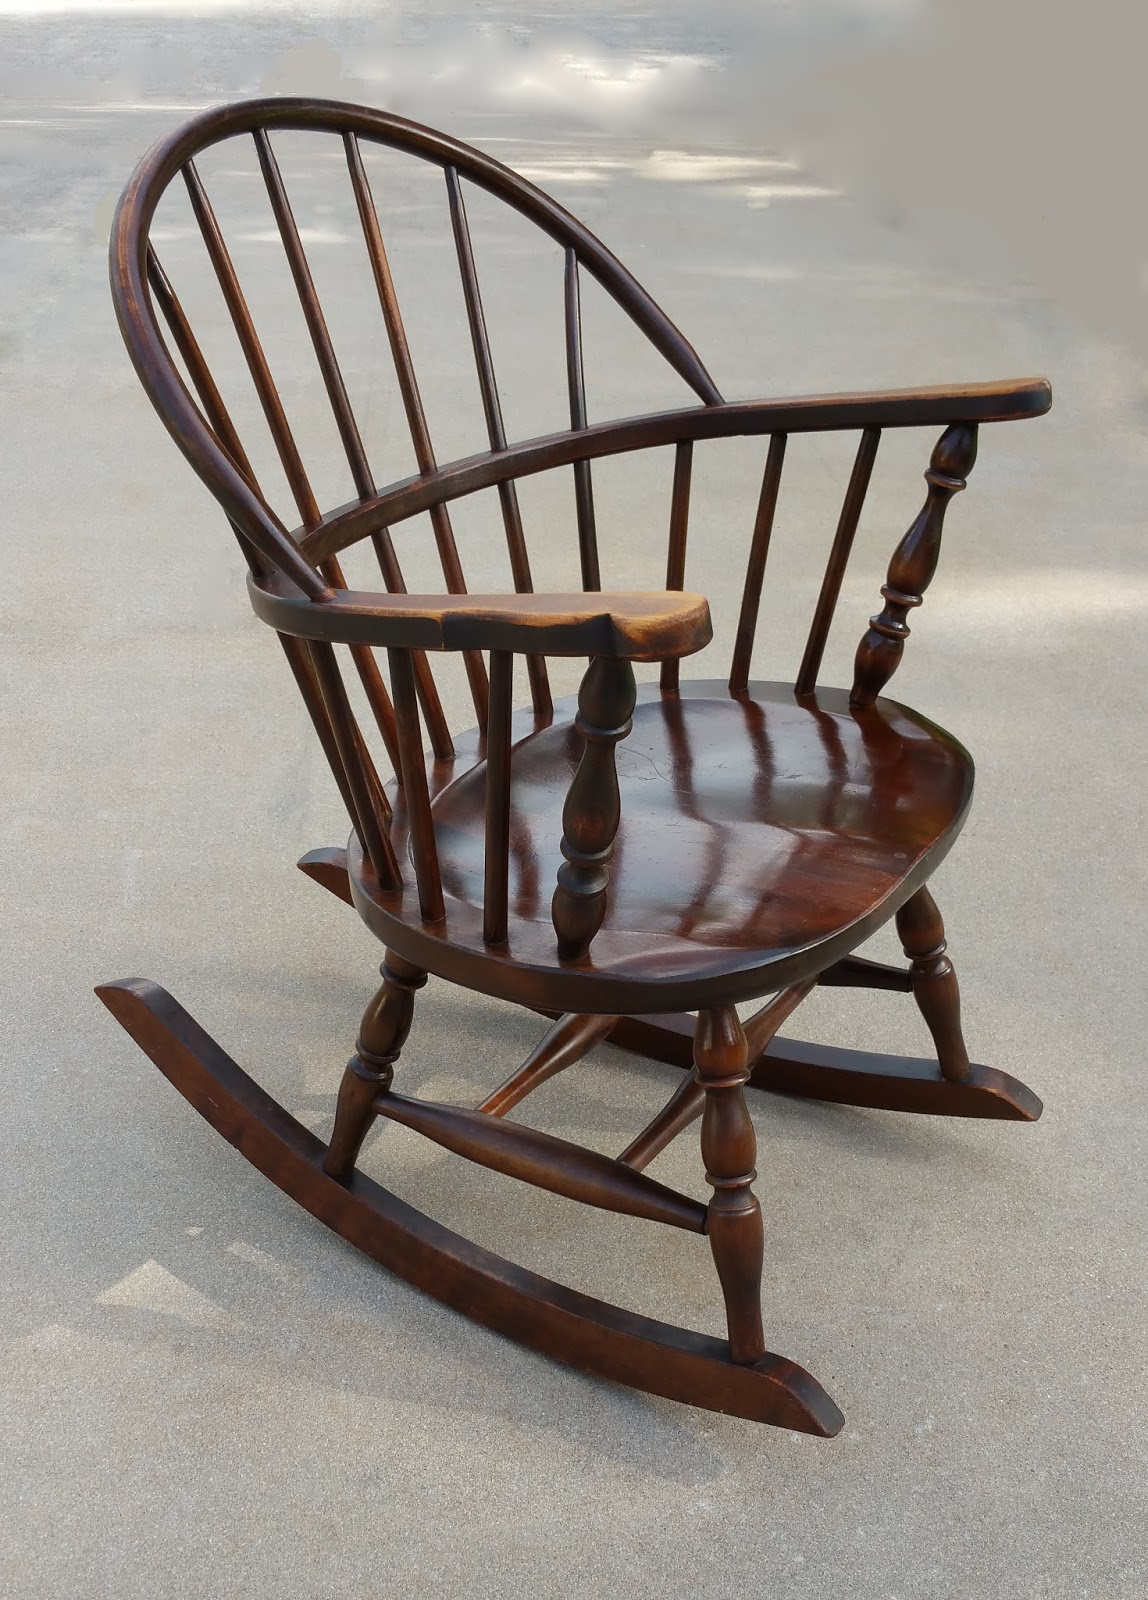 Antique Windsor Rocking Chair - Antique Windsor Rocking Chair Antique Furniture